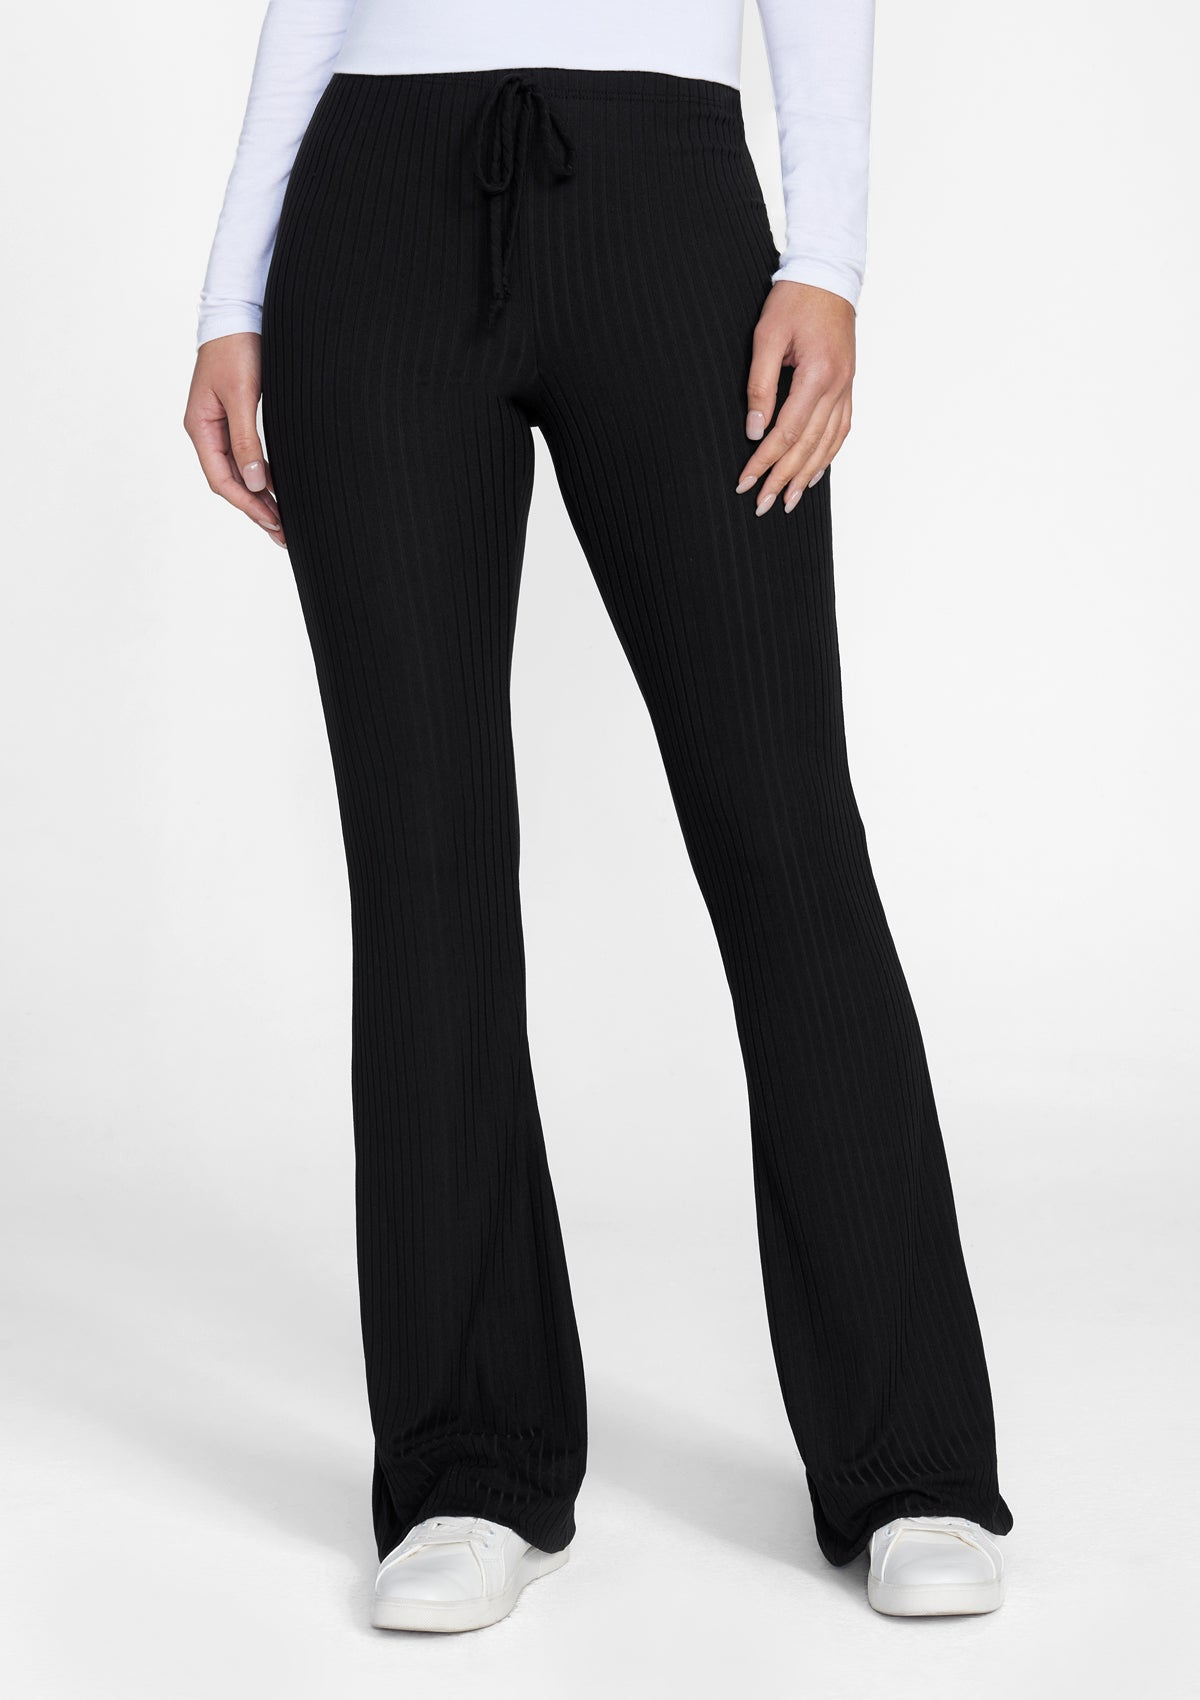 Alloy Apparel Tall Elana Tie Rib Knit Pants for Women in Black Size XL   Polyester